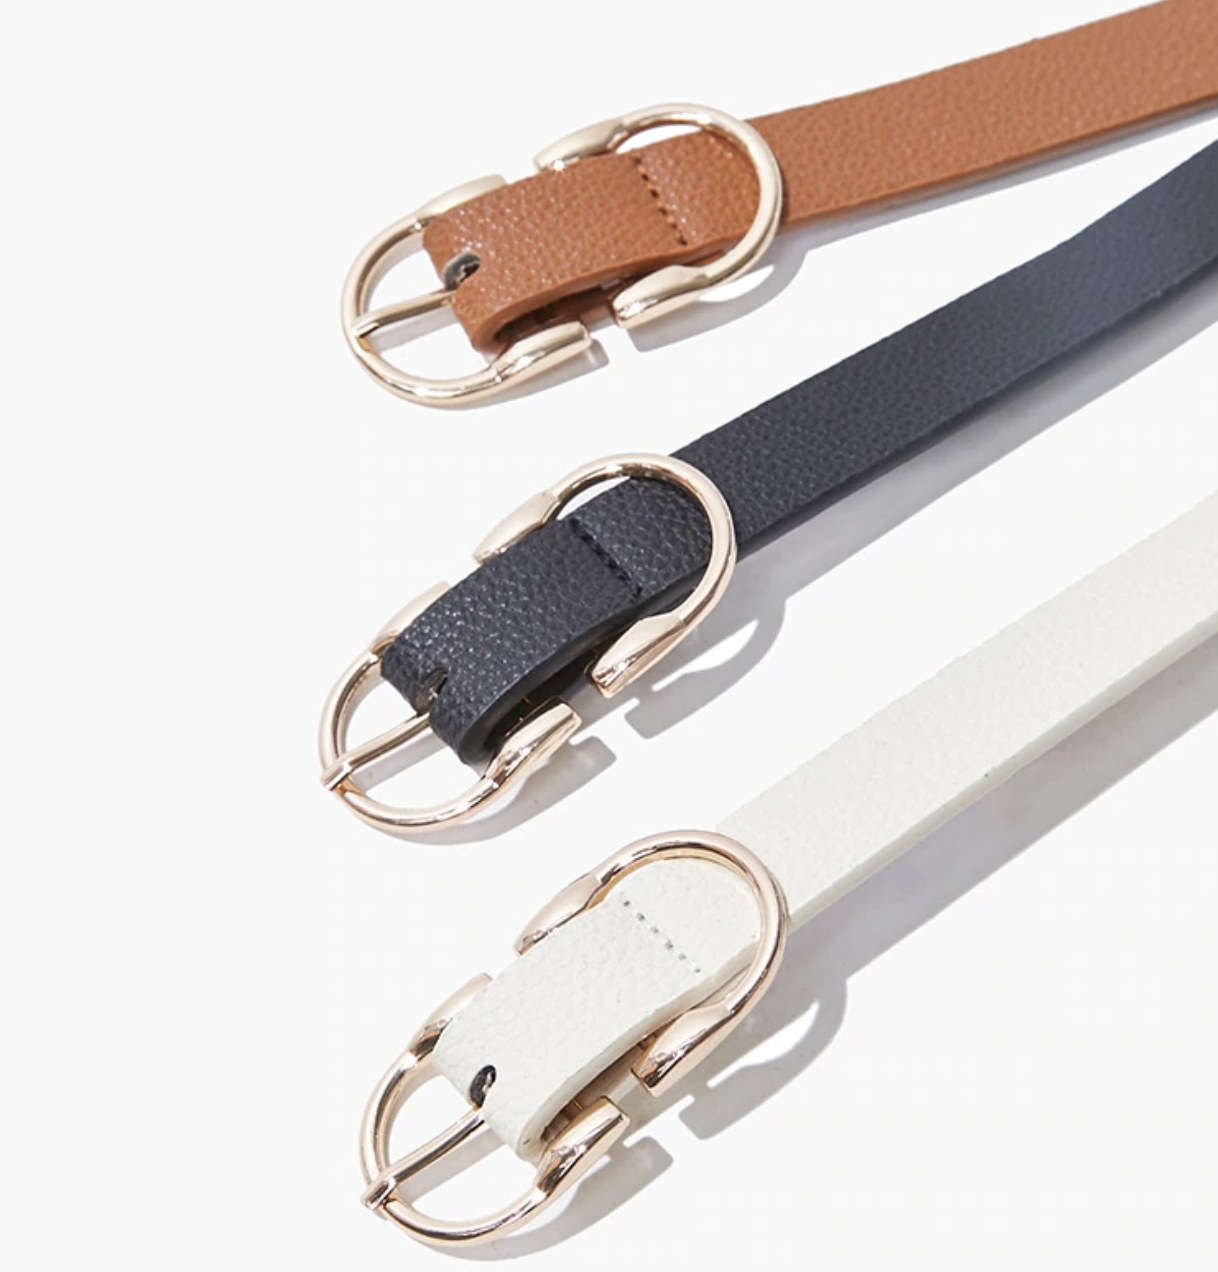 A black, tan, and white textured belt set